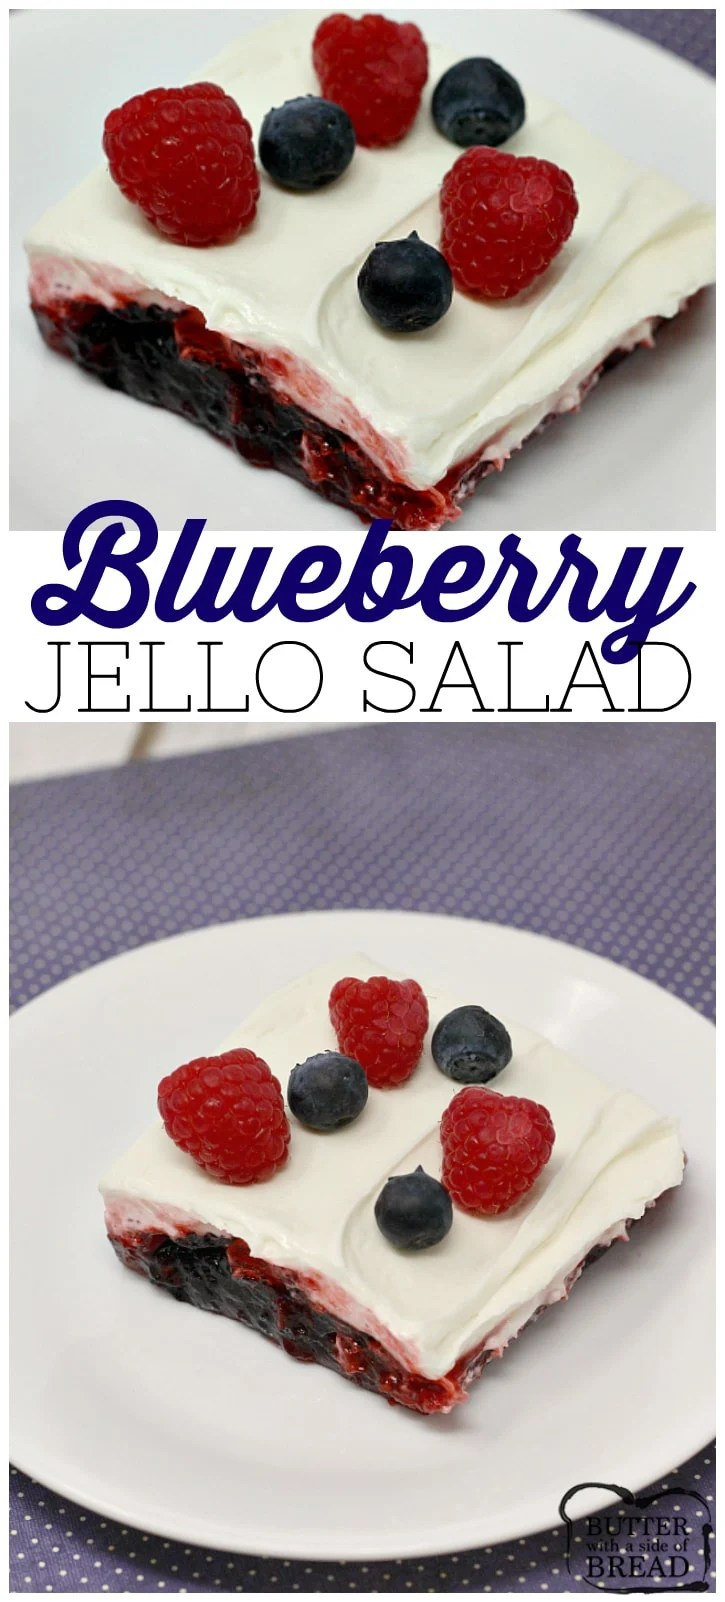 Blueberry Jello Salad is a quick and easy side dish or dessert that is full of blueberries and topped with a sweet and creamy layer!